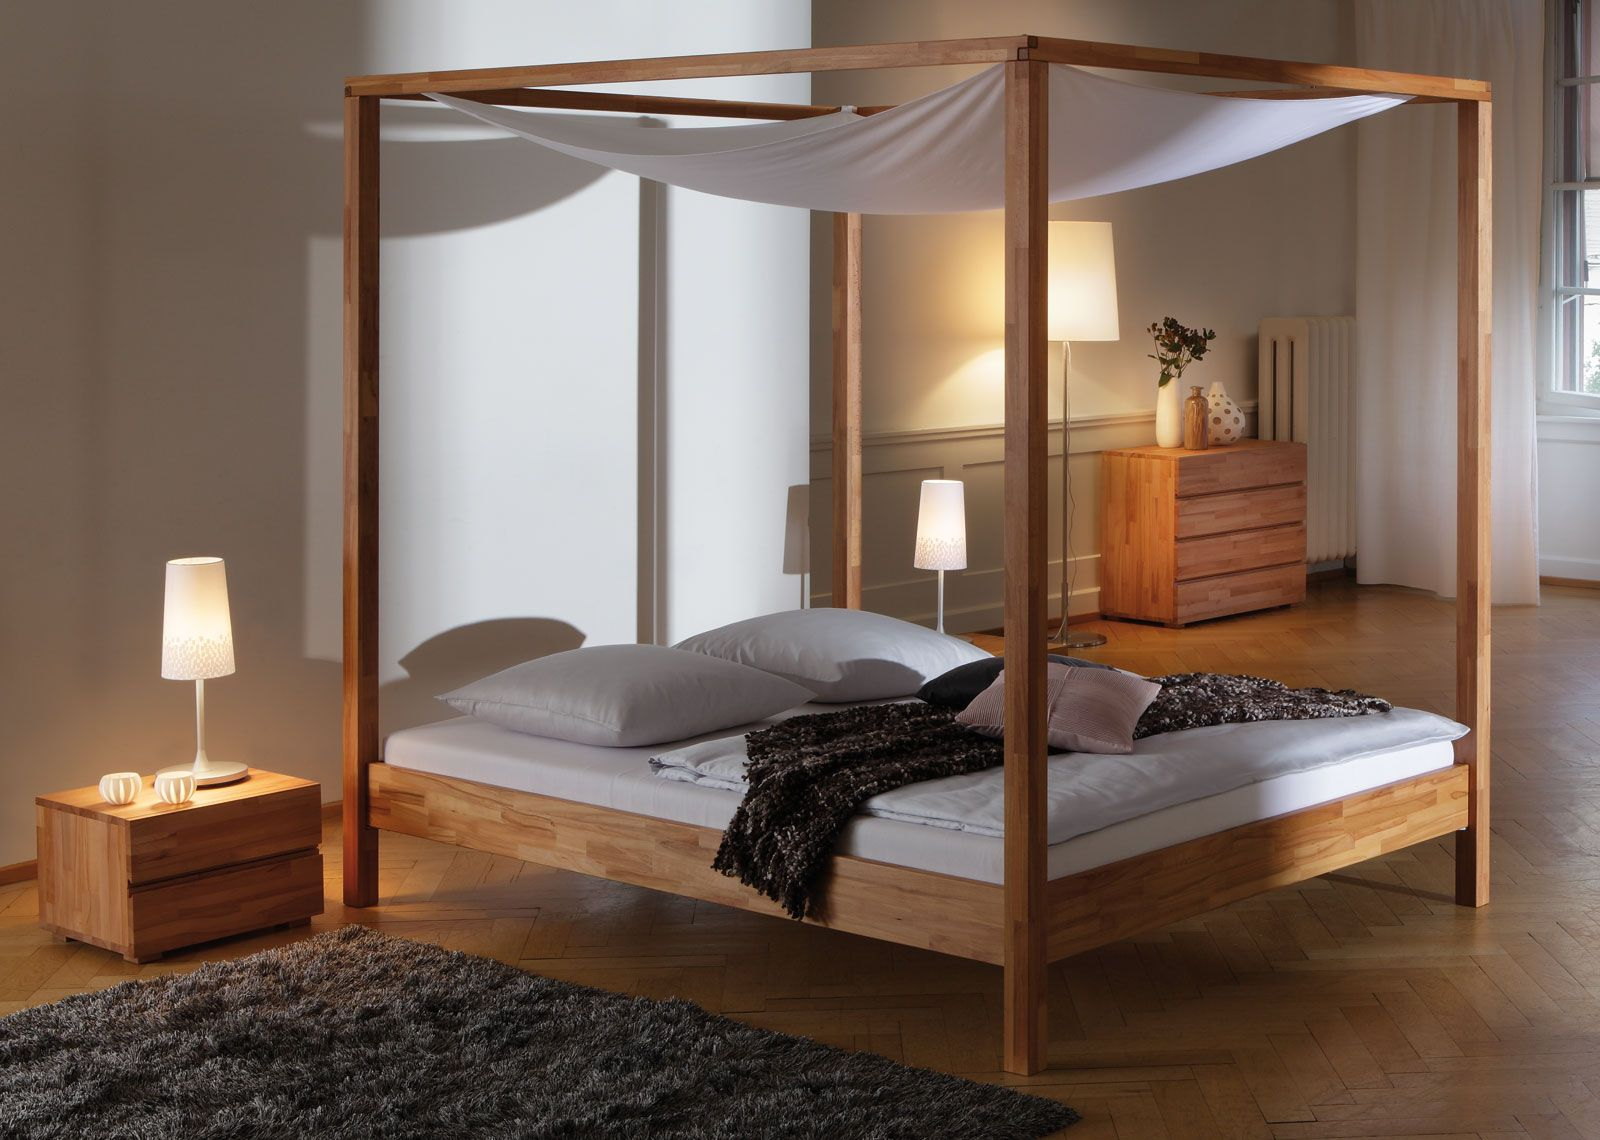 himmelbett merida betten pinterest himmelbett betten und baldachin. Black Bedroom Furniture Sets. Home Design Ideas